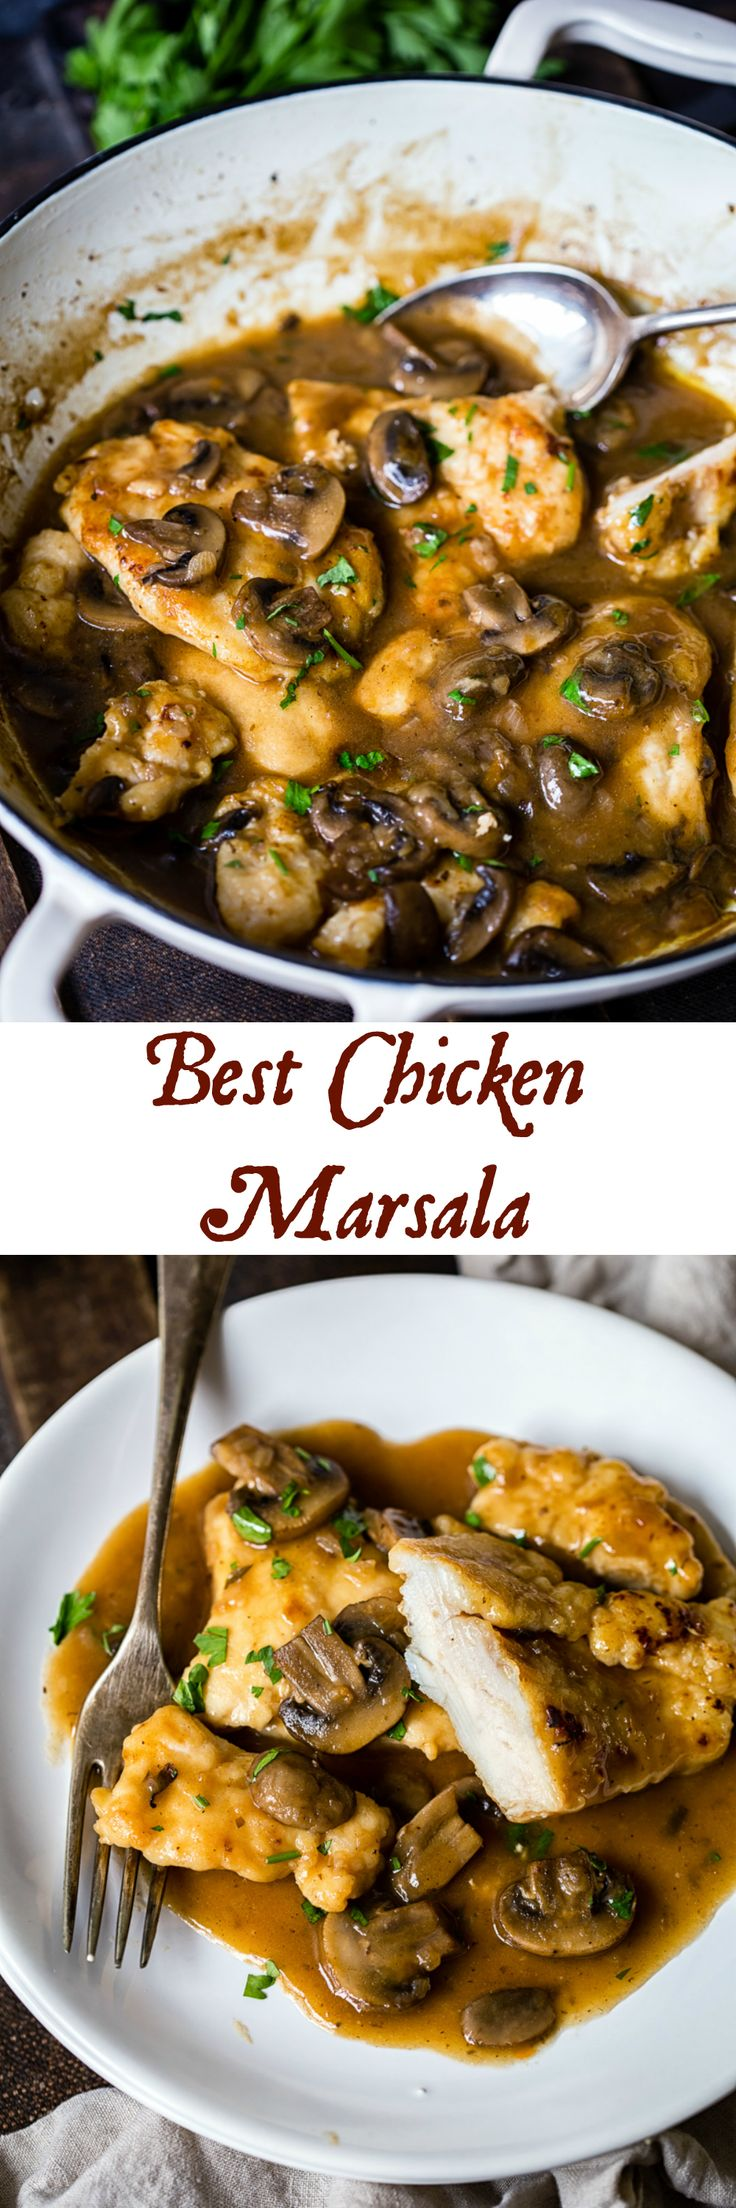 Enjoying this delicious homemade Chicken Marsala doesn't require a restaurant trip, only 25 minutes of your time and a handful of ingredients found at home!